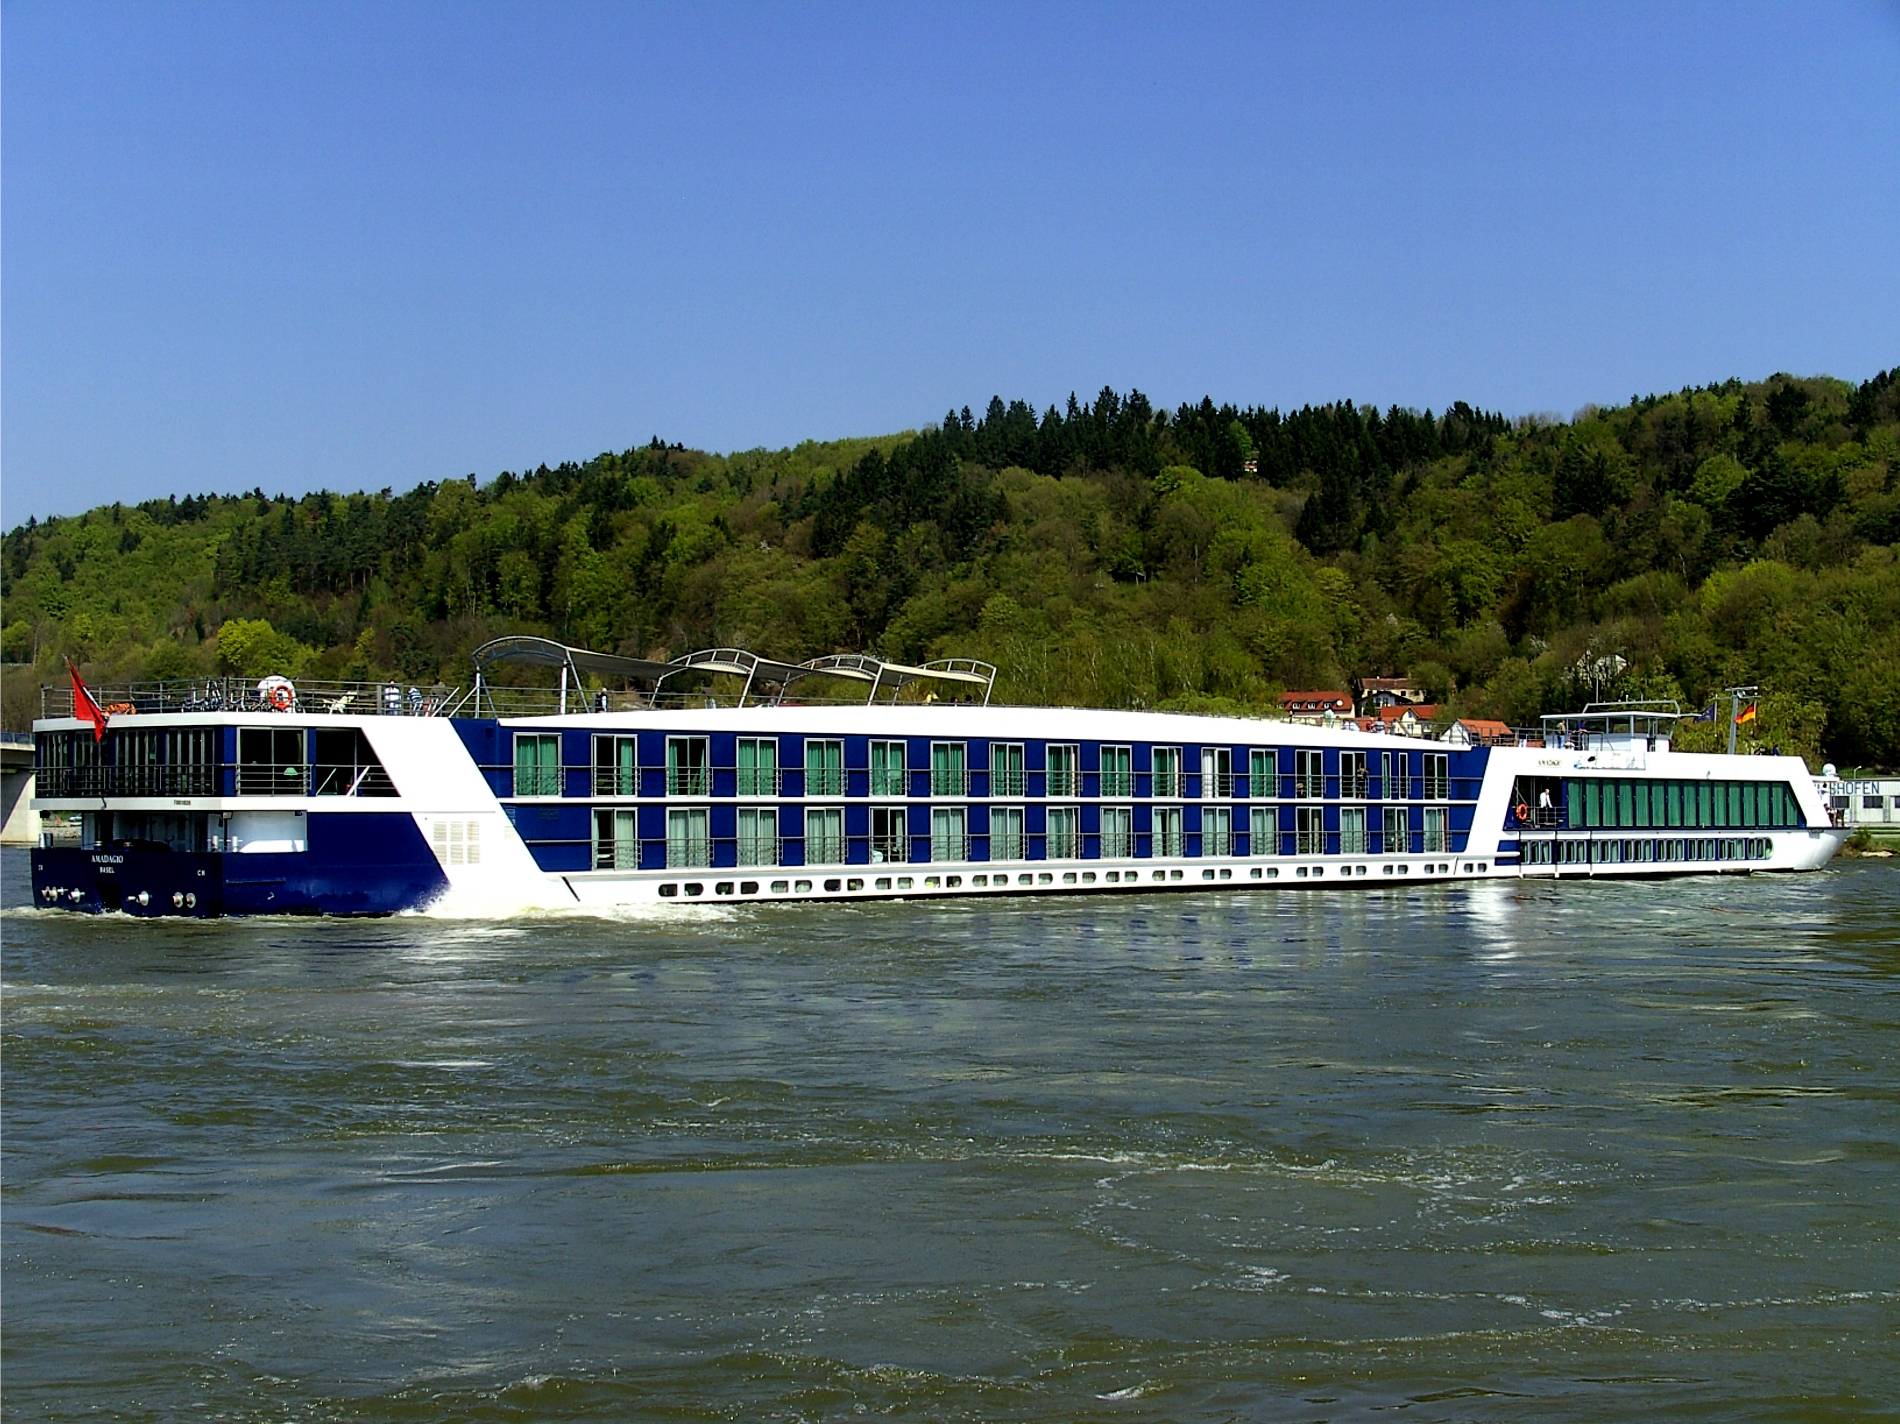 Danube River Cruise Ships File:cruise Ship on The Danube